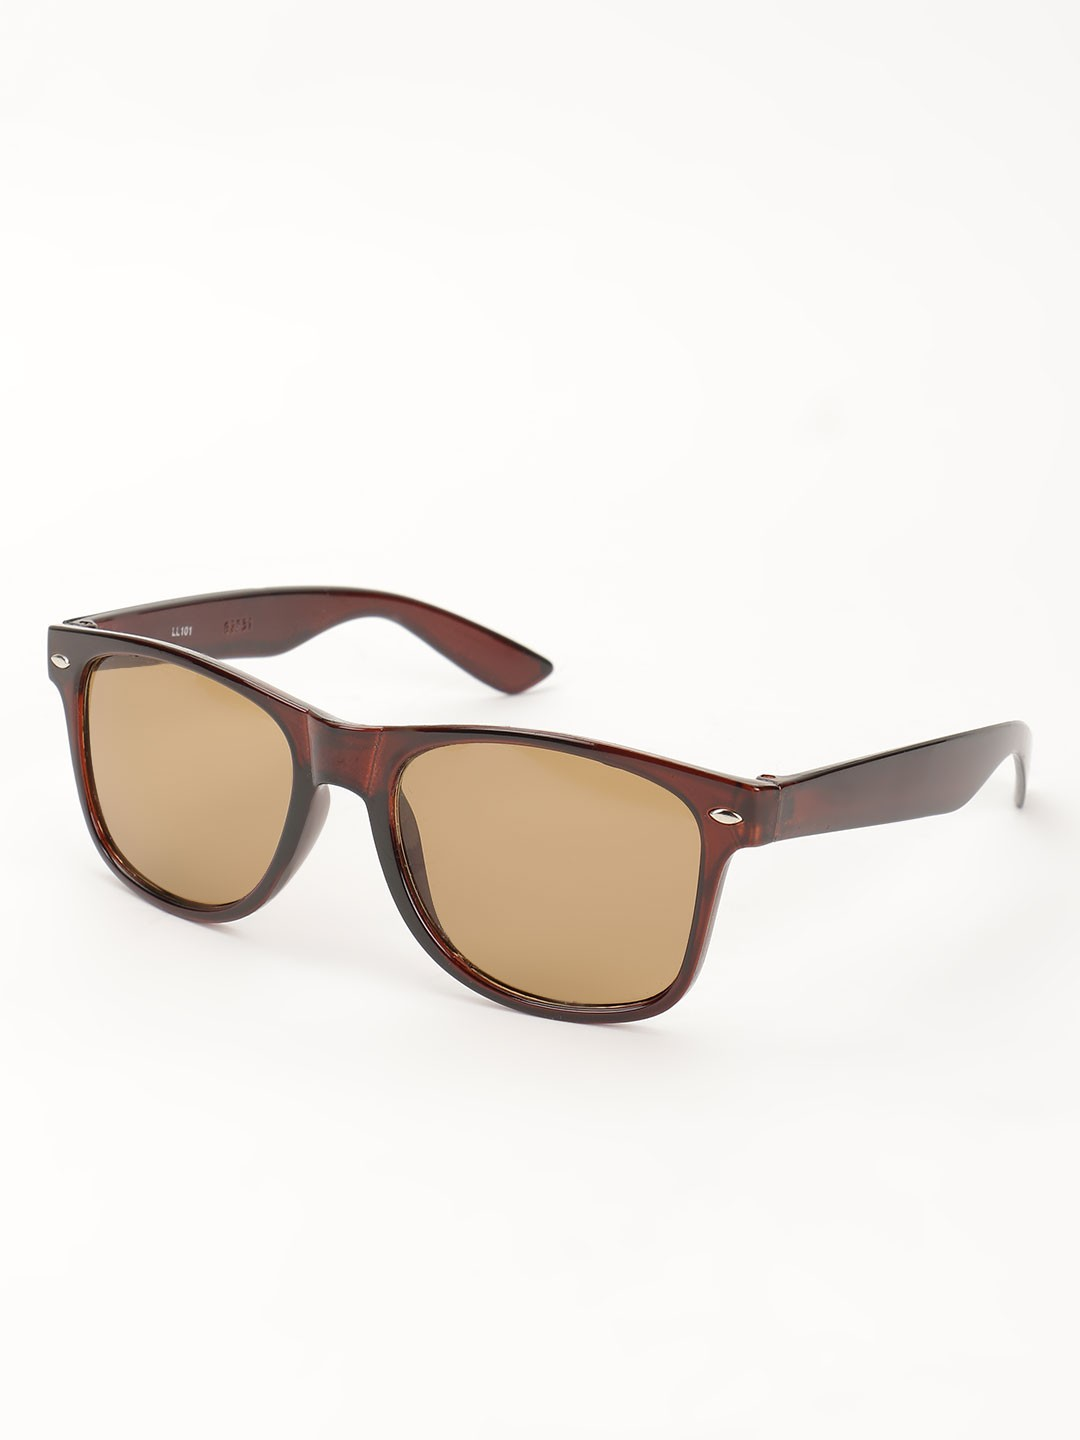 KOOVS Brown Tinted Lens Classic Sunglasses 1